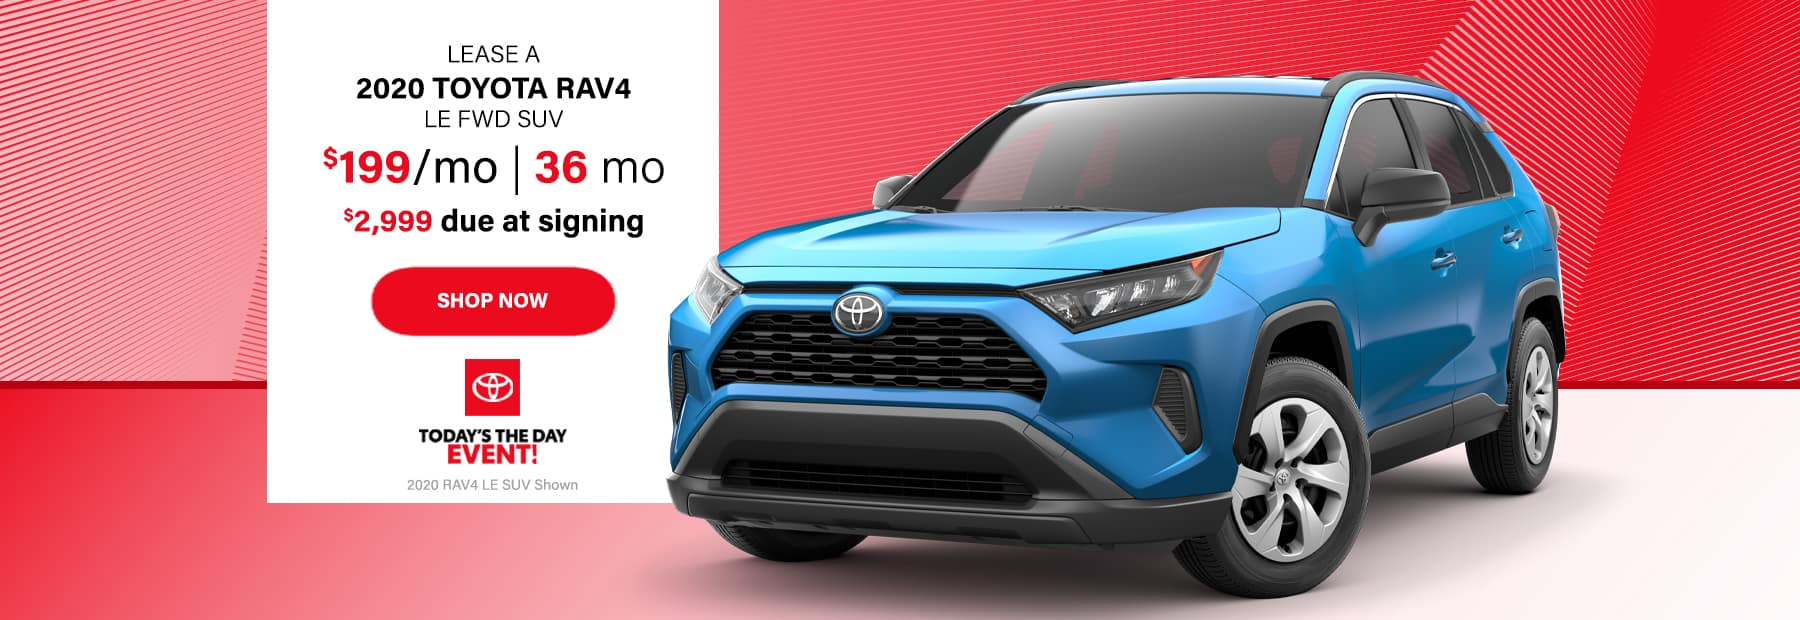 Lease a 2020 Toyota RAV4 LE FWD SUV for $199/mo. for 36 mos. with $2,999 down